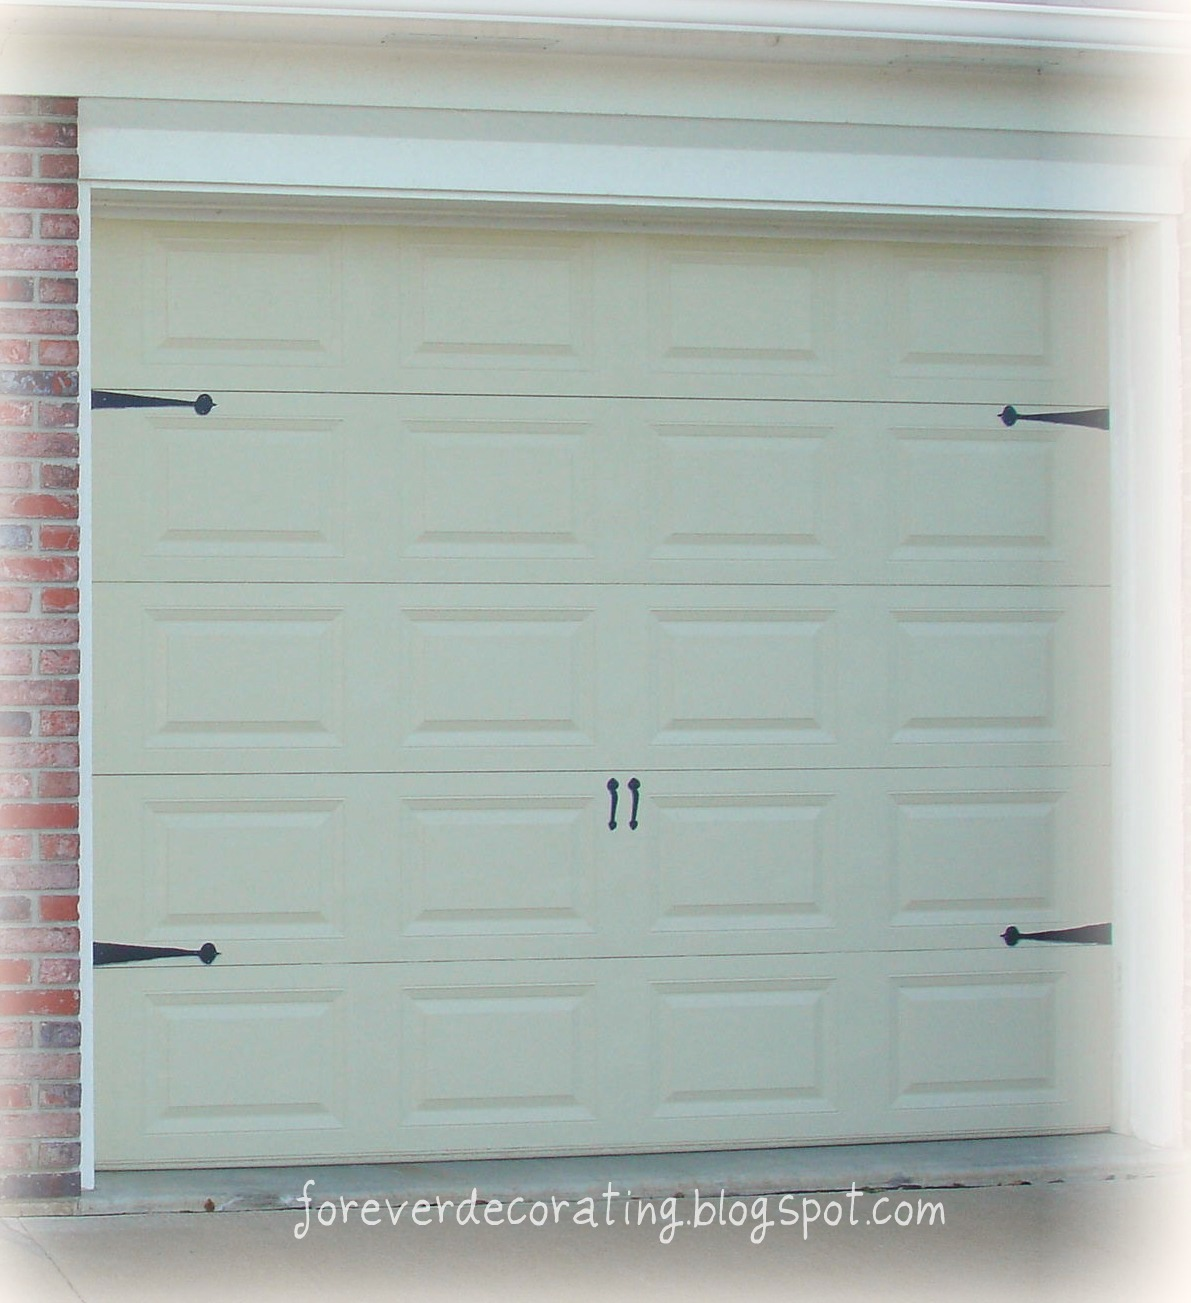 Forever Decorating!: Carriage House Garage Doors Guest